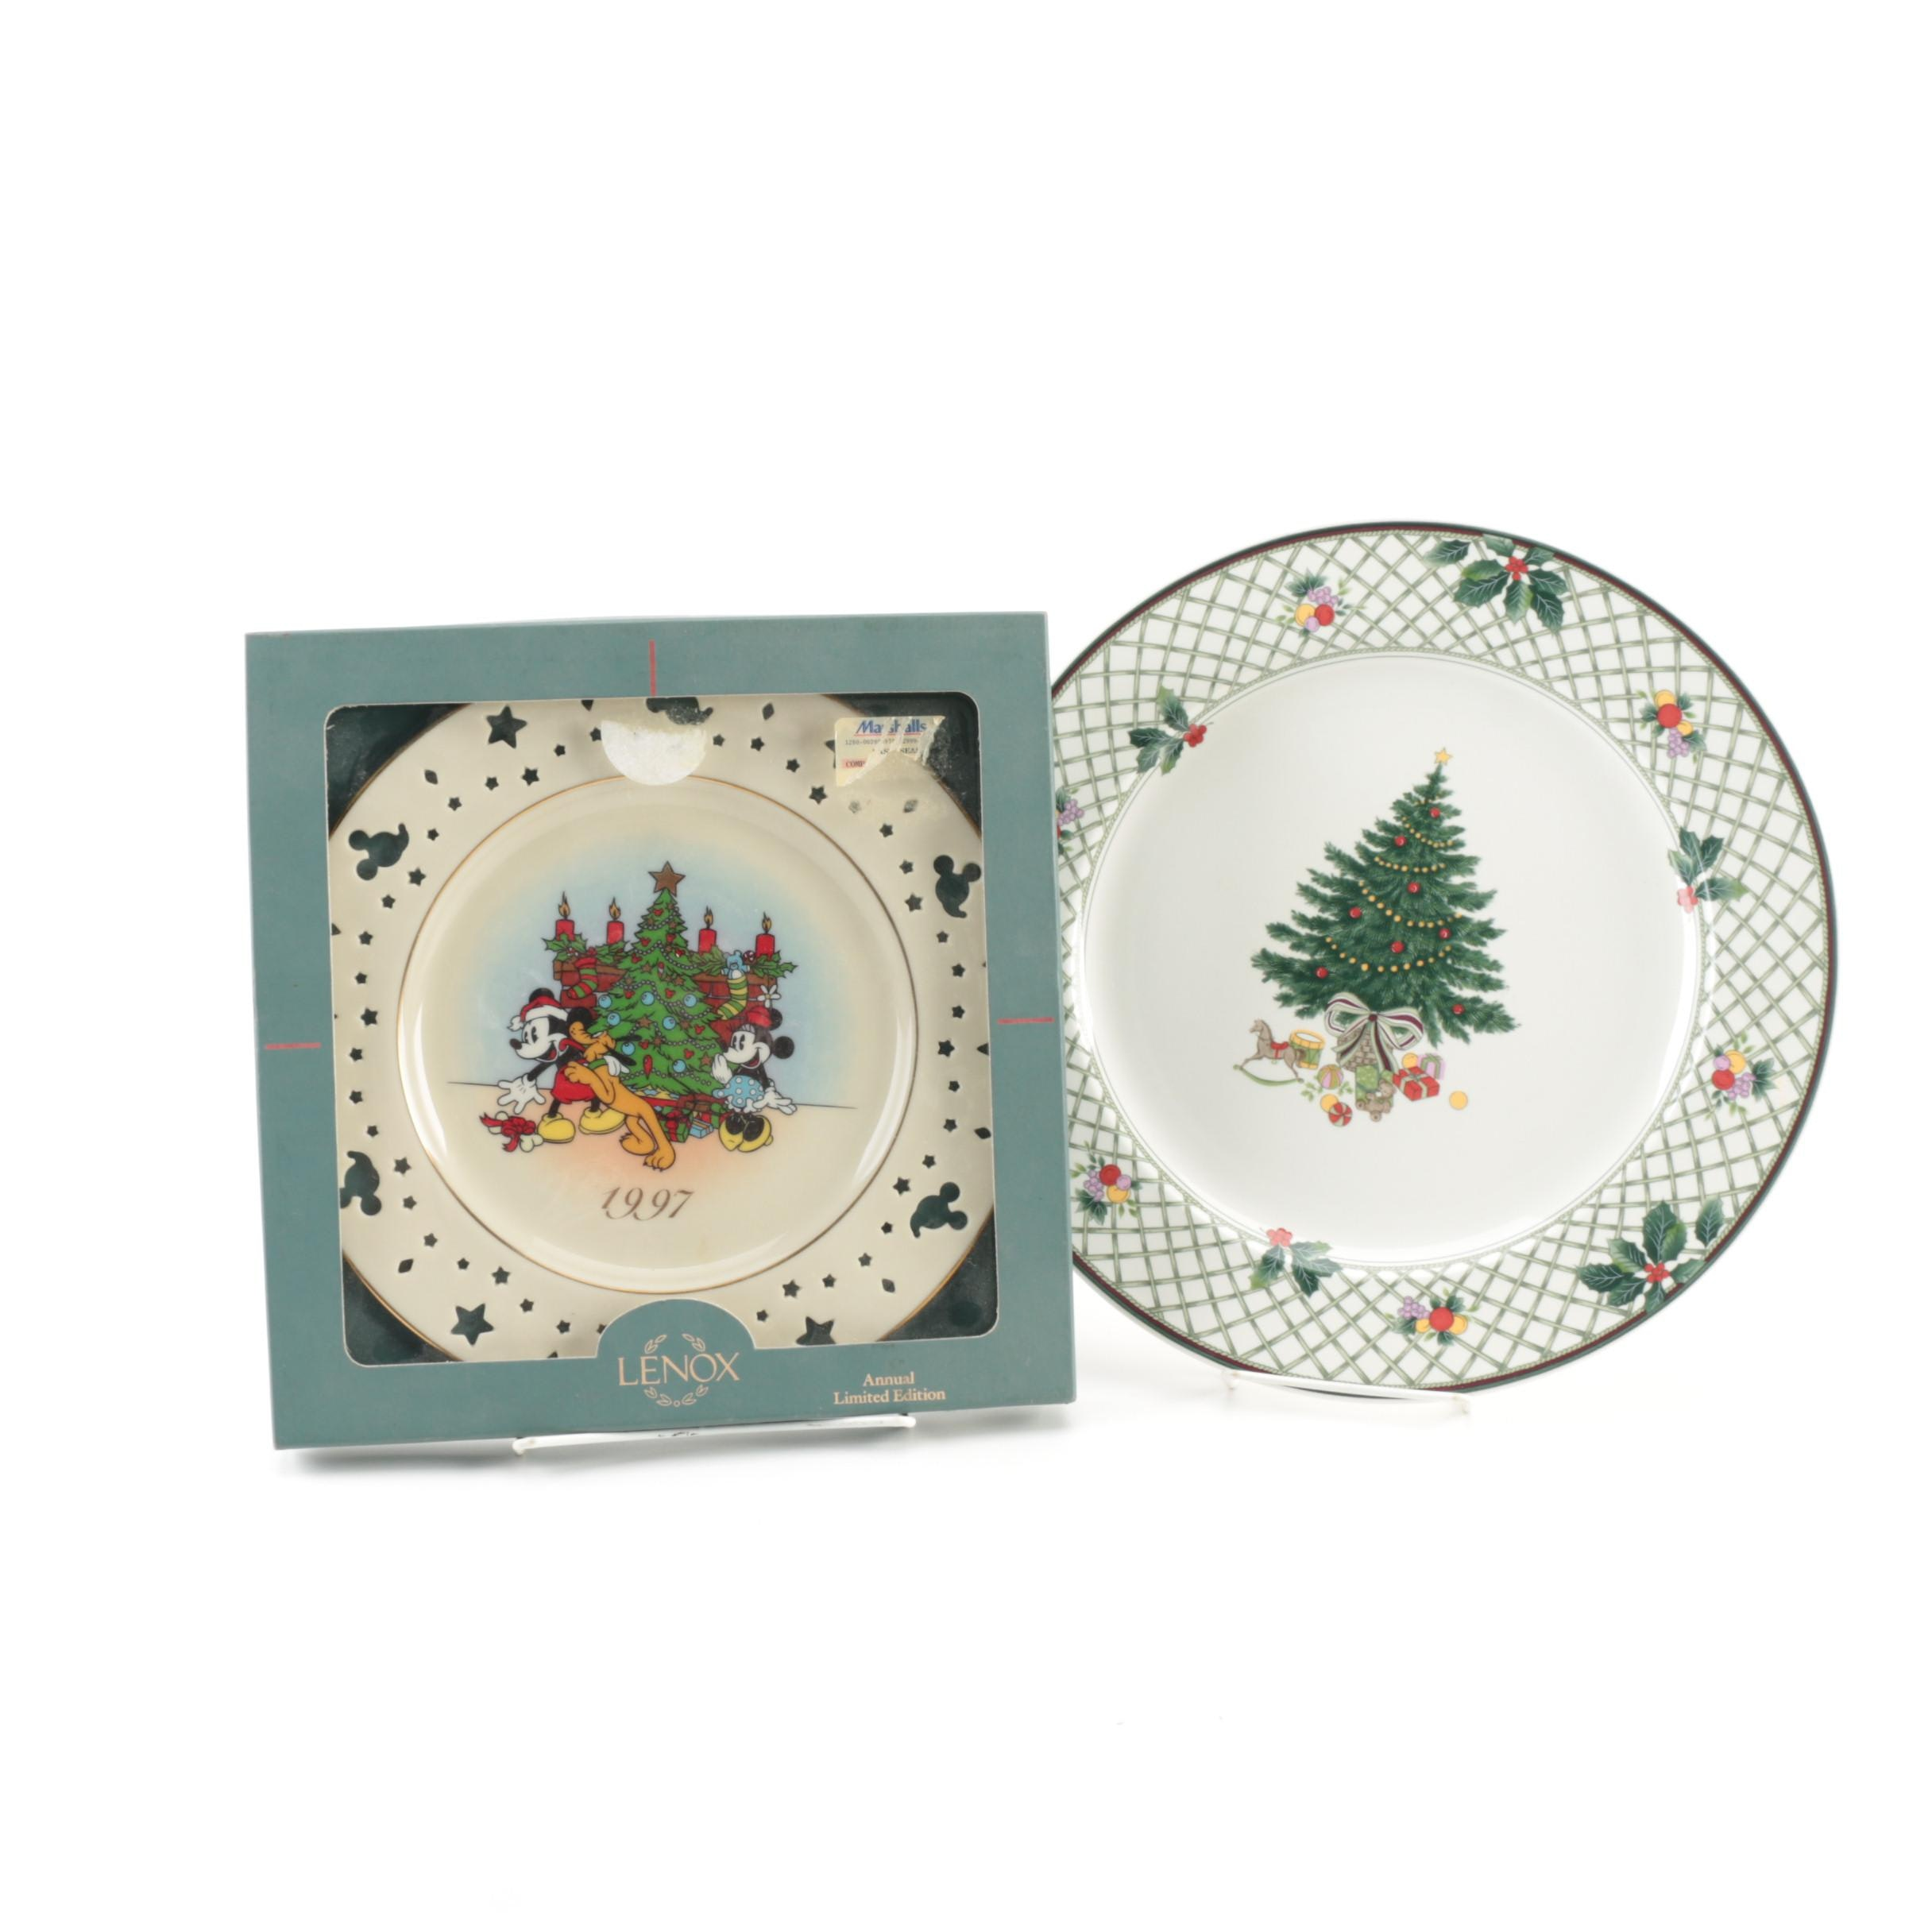 Lenox and Mikasa Holiday Plates ...  sc 1 st  EBTH.com & Lenox and Mikasa Holiday Plates : EBTH